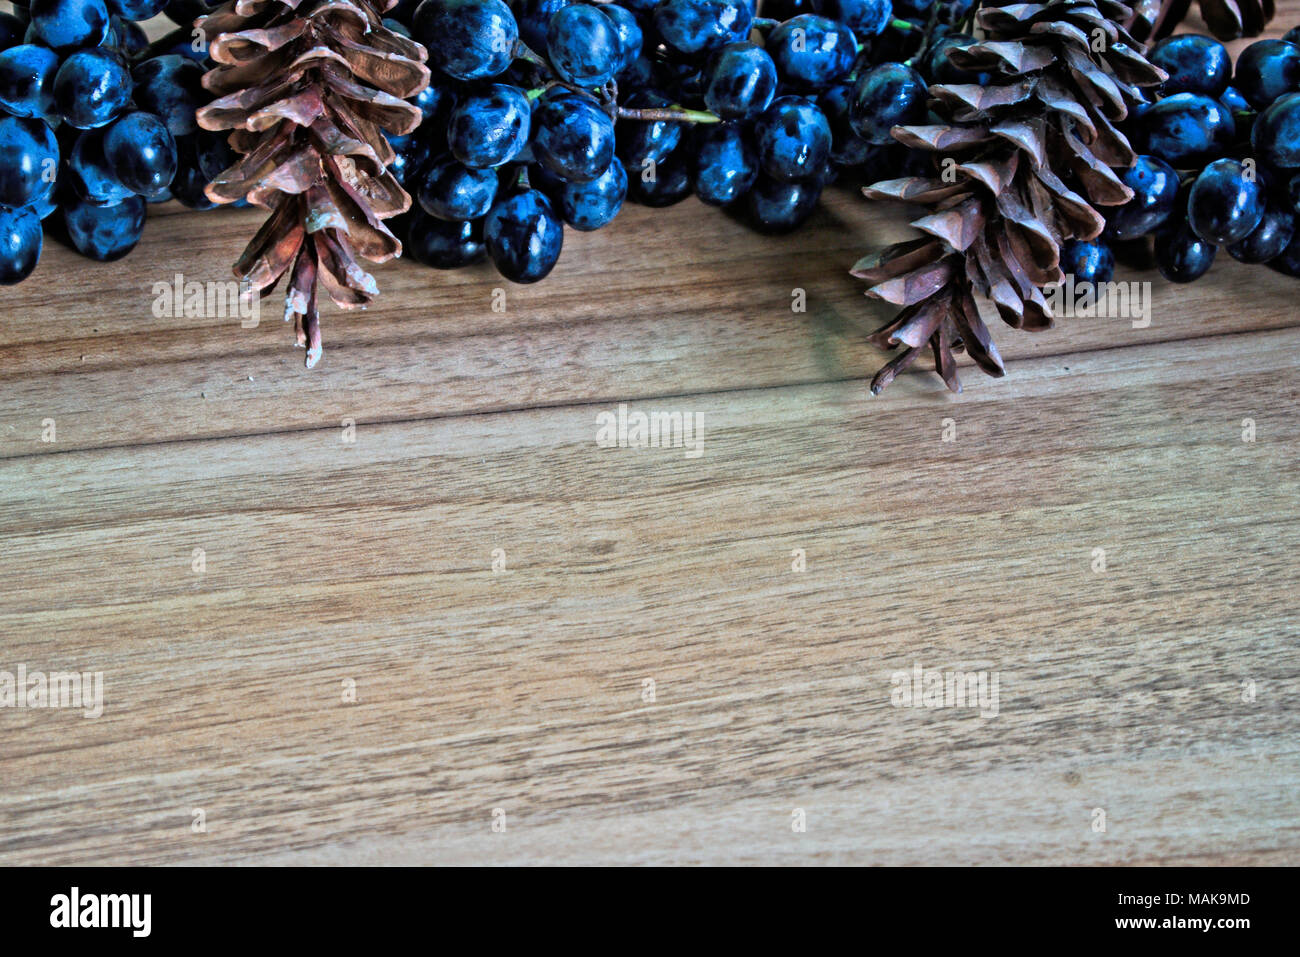 Closeup of grapes and pine cones on a wooden table - Stock Image